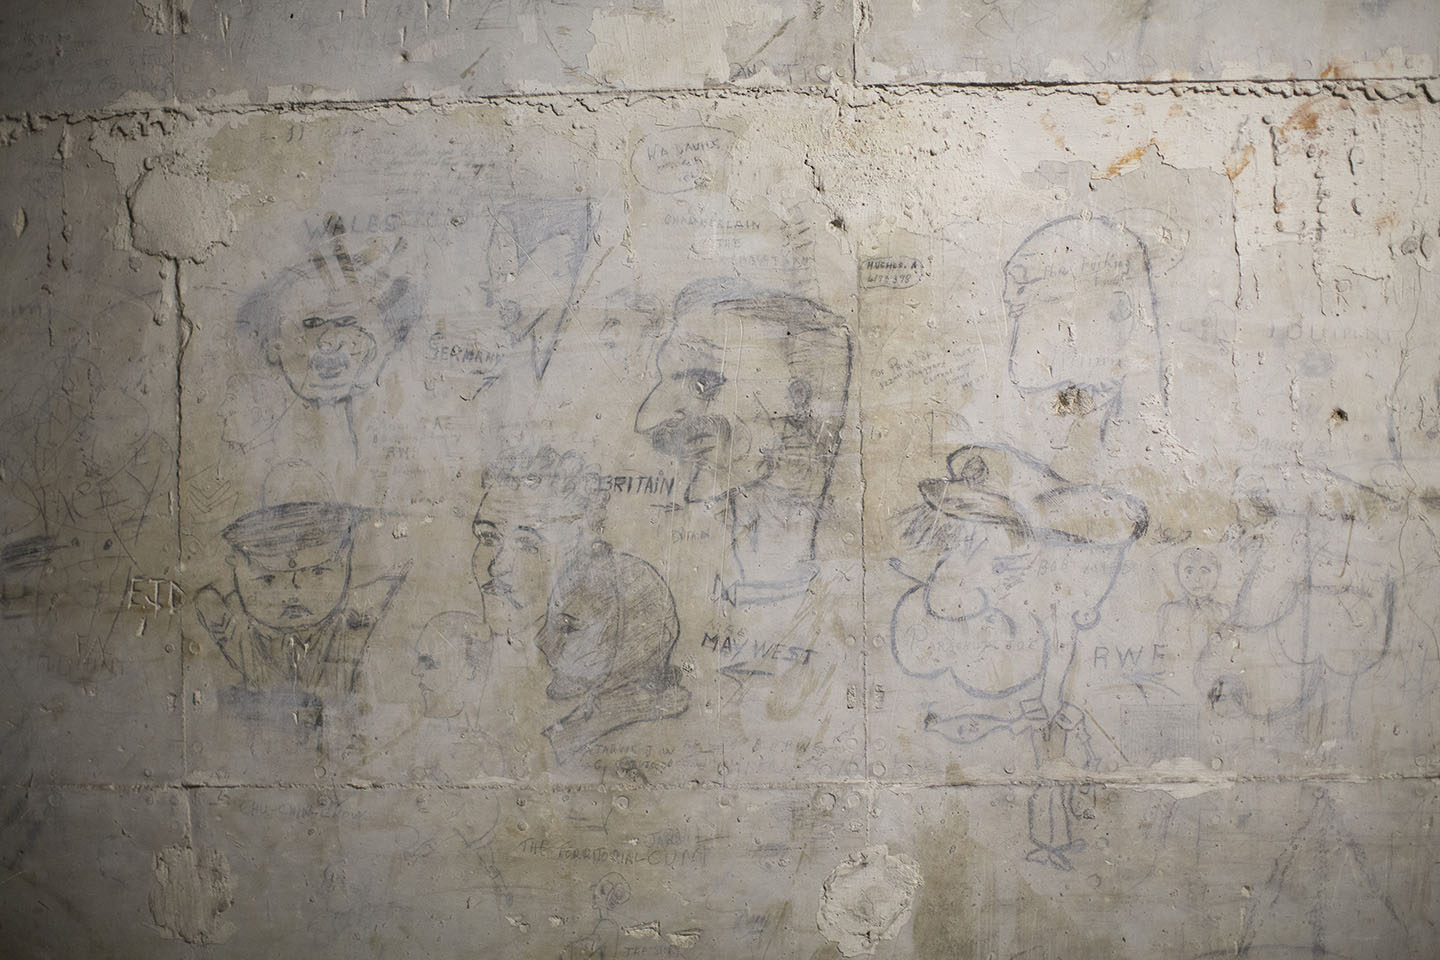 WWII-era drawings on the wall show the cave's history as a munitions depot